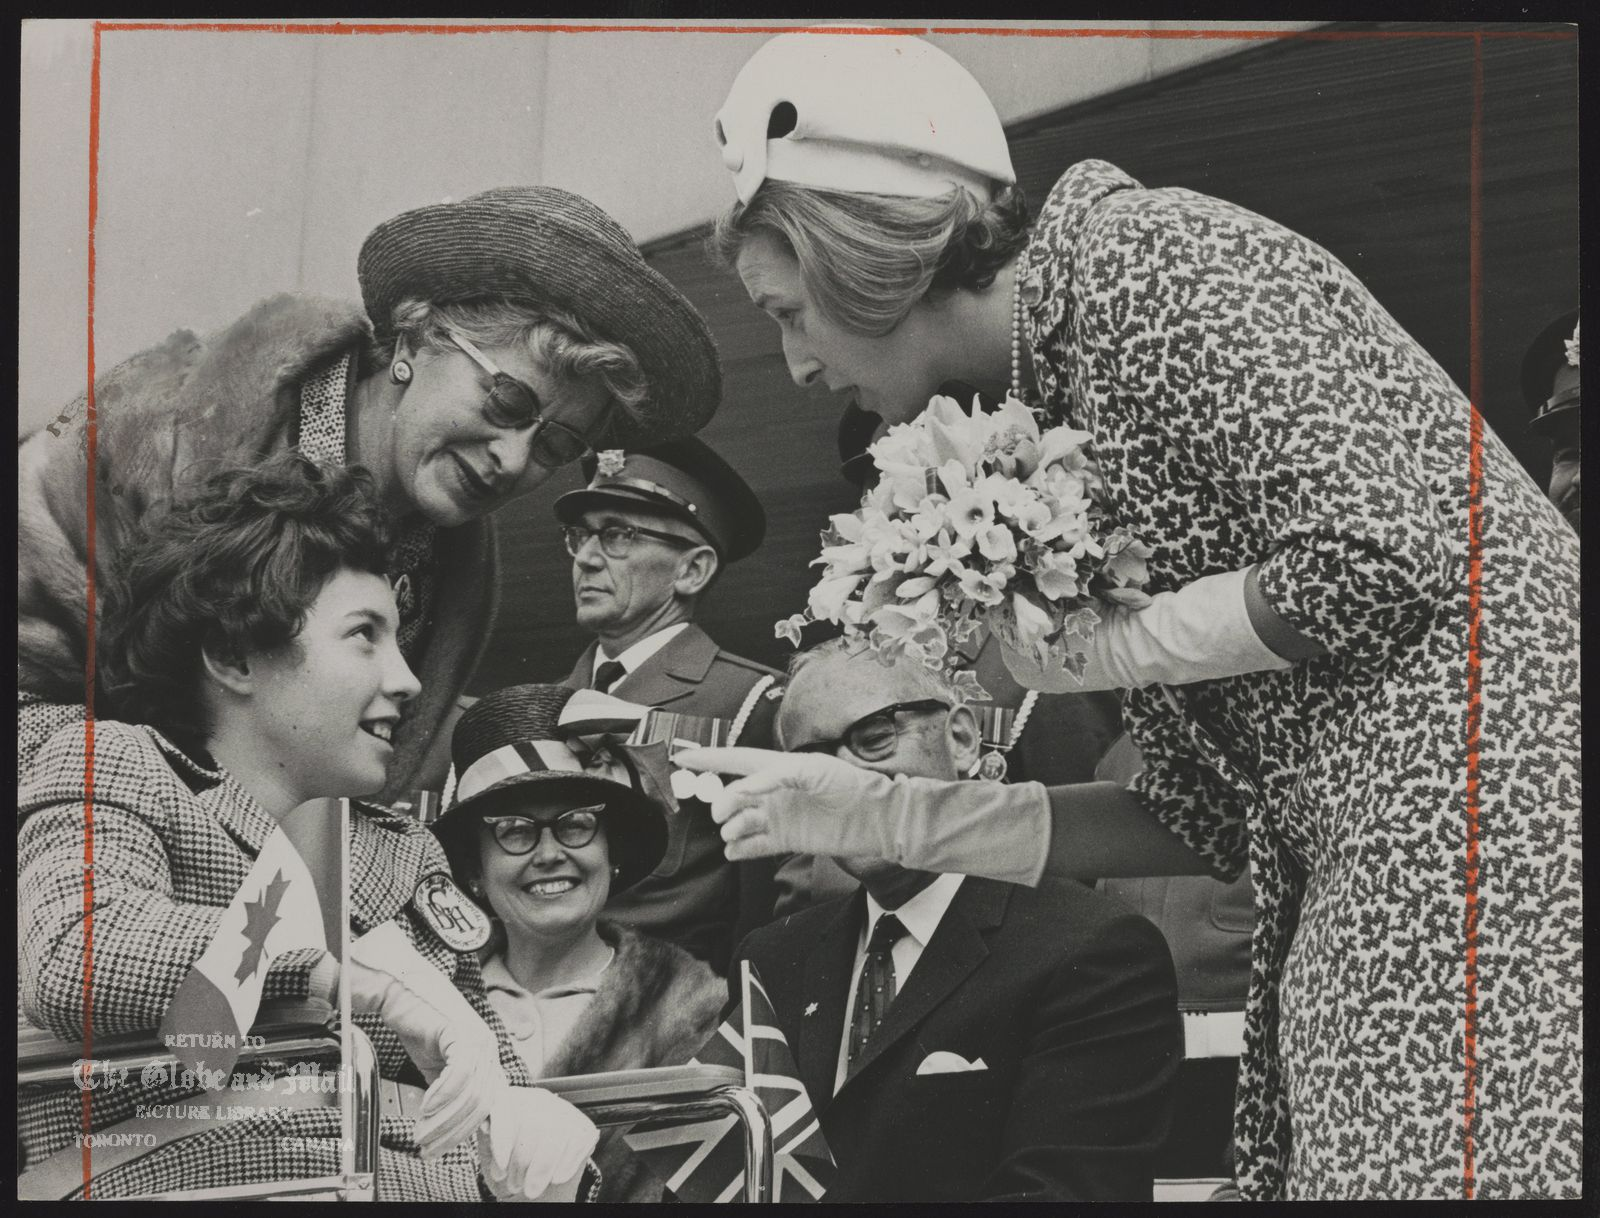 ROYAL FAMILY Gt. Britain. Princess Alexandra. (Visit to Canada May 1967) Princess Alexandra chats with Robin Hadley, 13, after the patients at Bloorview Children's Hospital presented her with a bouquet outside [Toronto] City Hall. Standing by is hospital administrator Mrs. Edith G. White. More than 3,000 children were present to greet the children? [royal visitor].